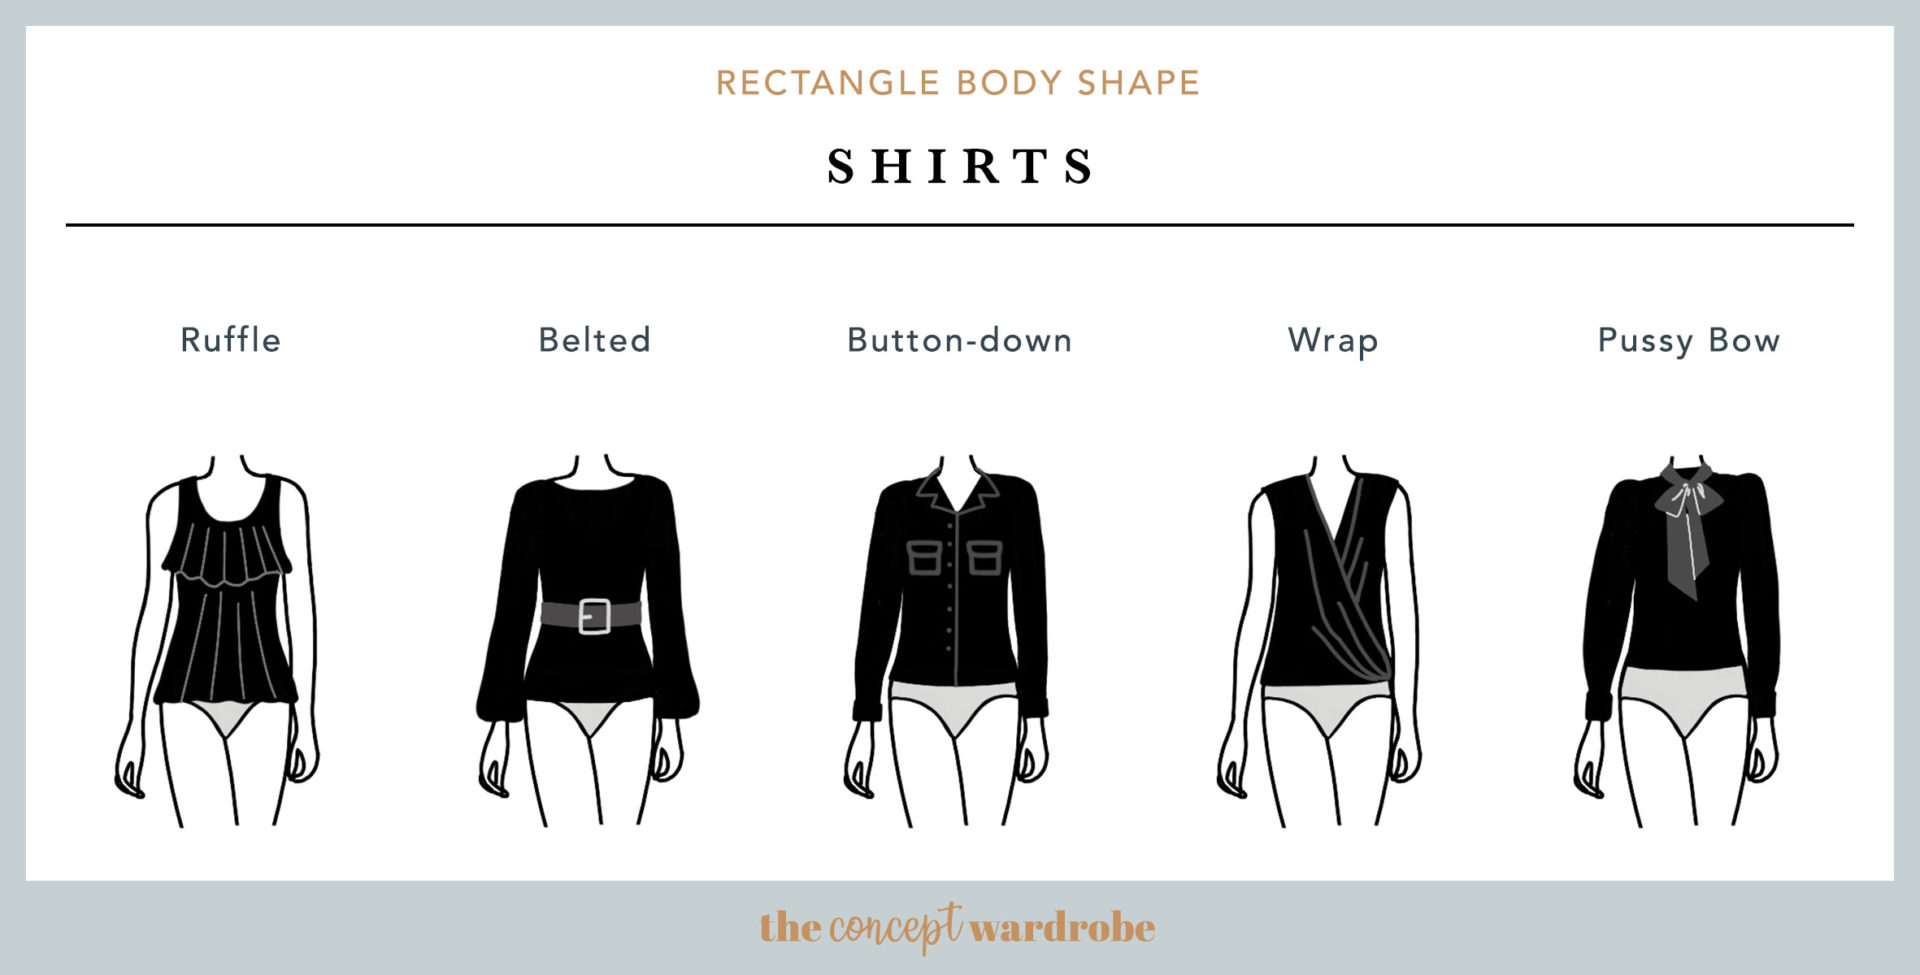 Rectangle Body Shape Shirts - the concept wardrobe